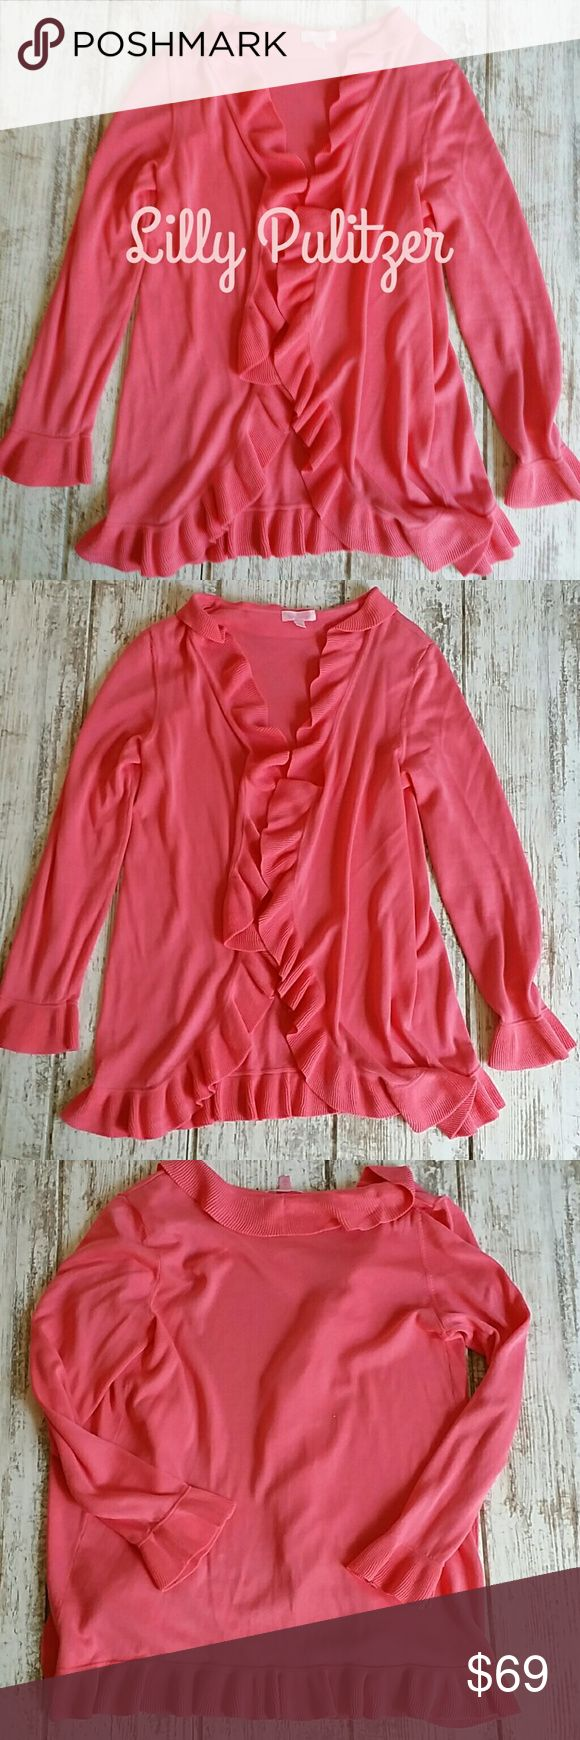 """Lilly Pulitzer cardigan *beautiful salmon/coral color  *100 % cotton   *hook and eye closures  *great condition   *Ruffled edge surrounds and on the cuffs  *about 30 """" from the shoulder to the hem   *sorry, no trades Lilly Pulitzer Sweaters Cardigans"""